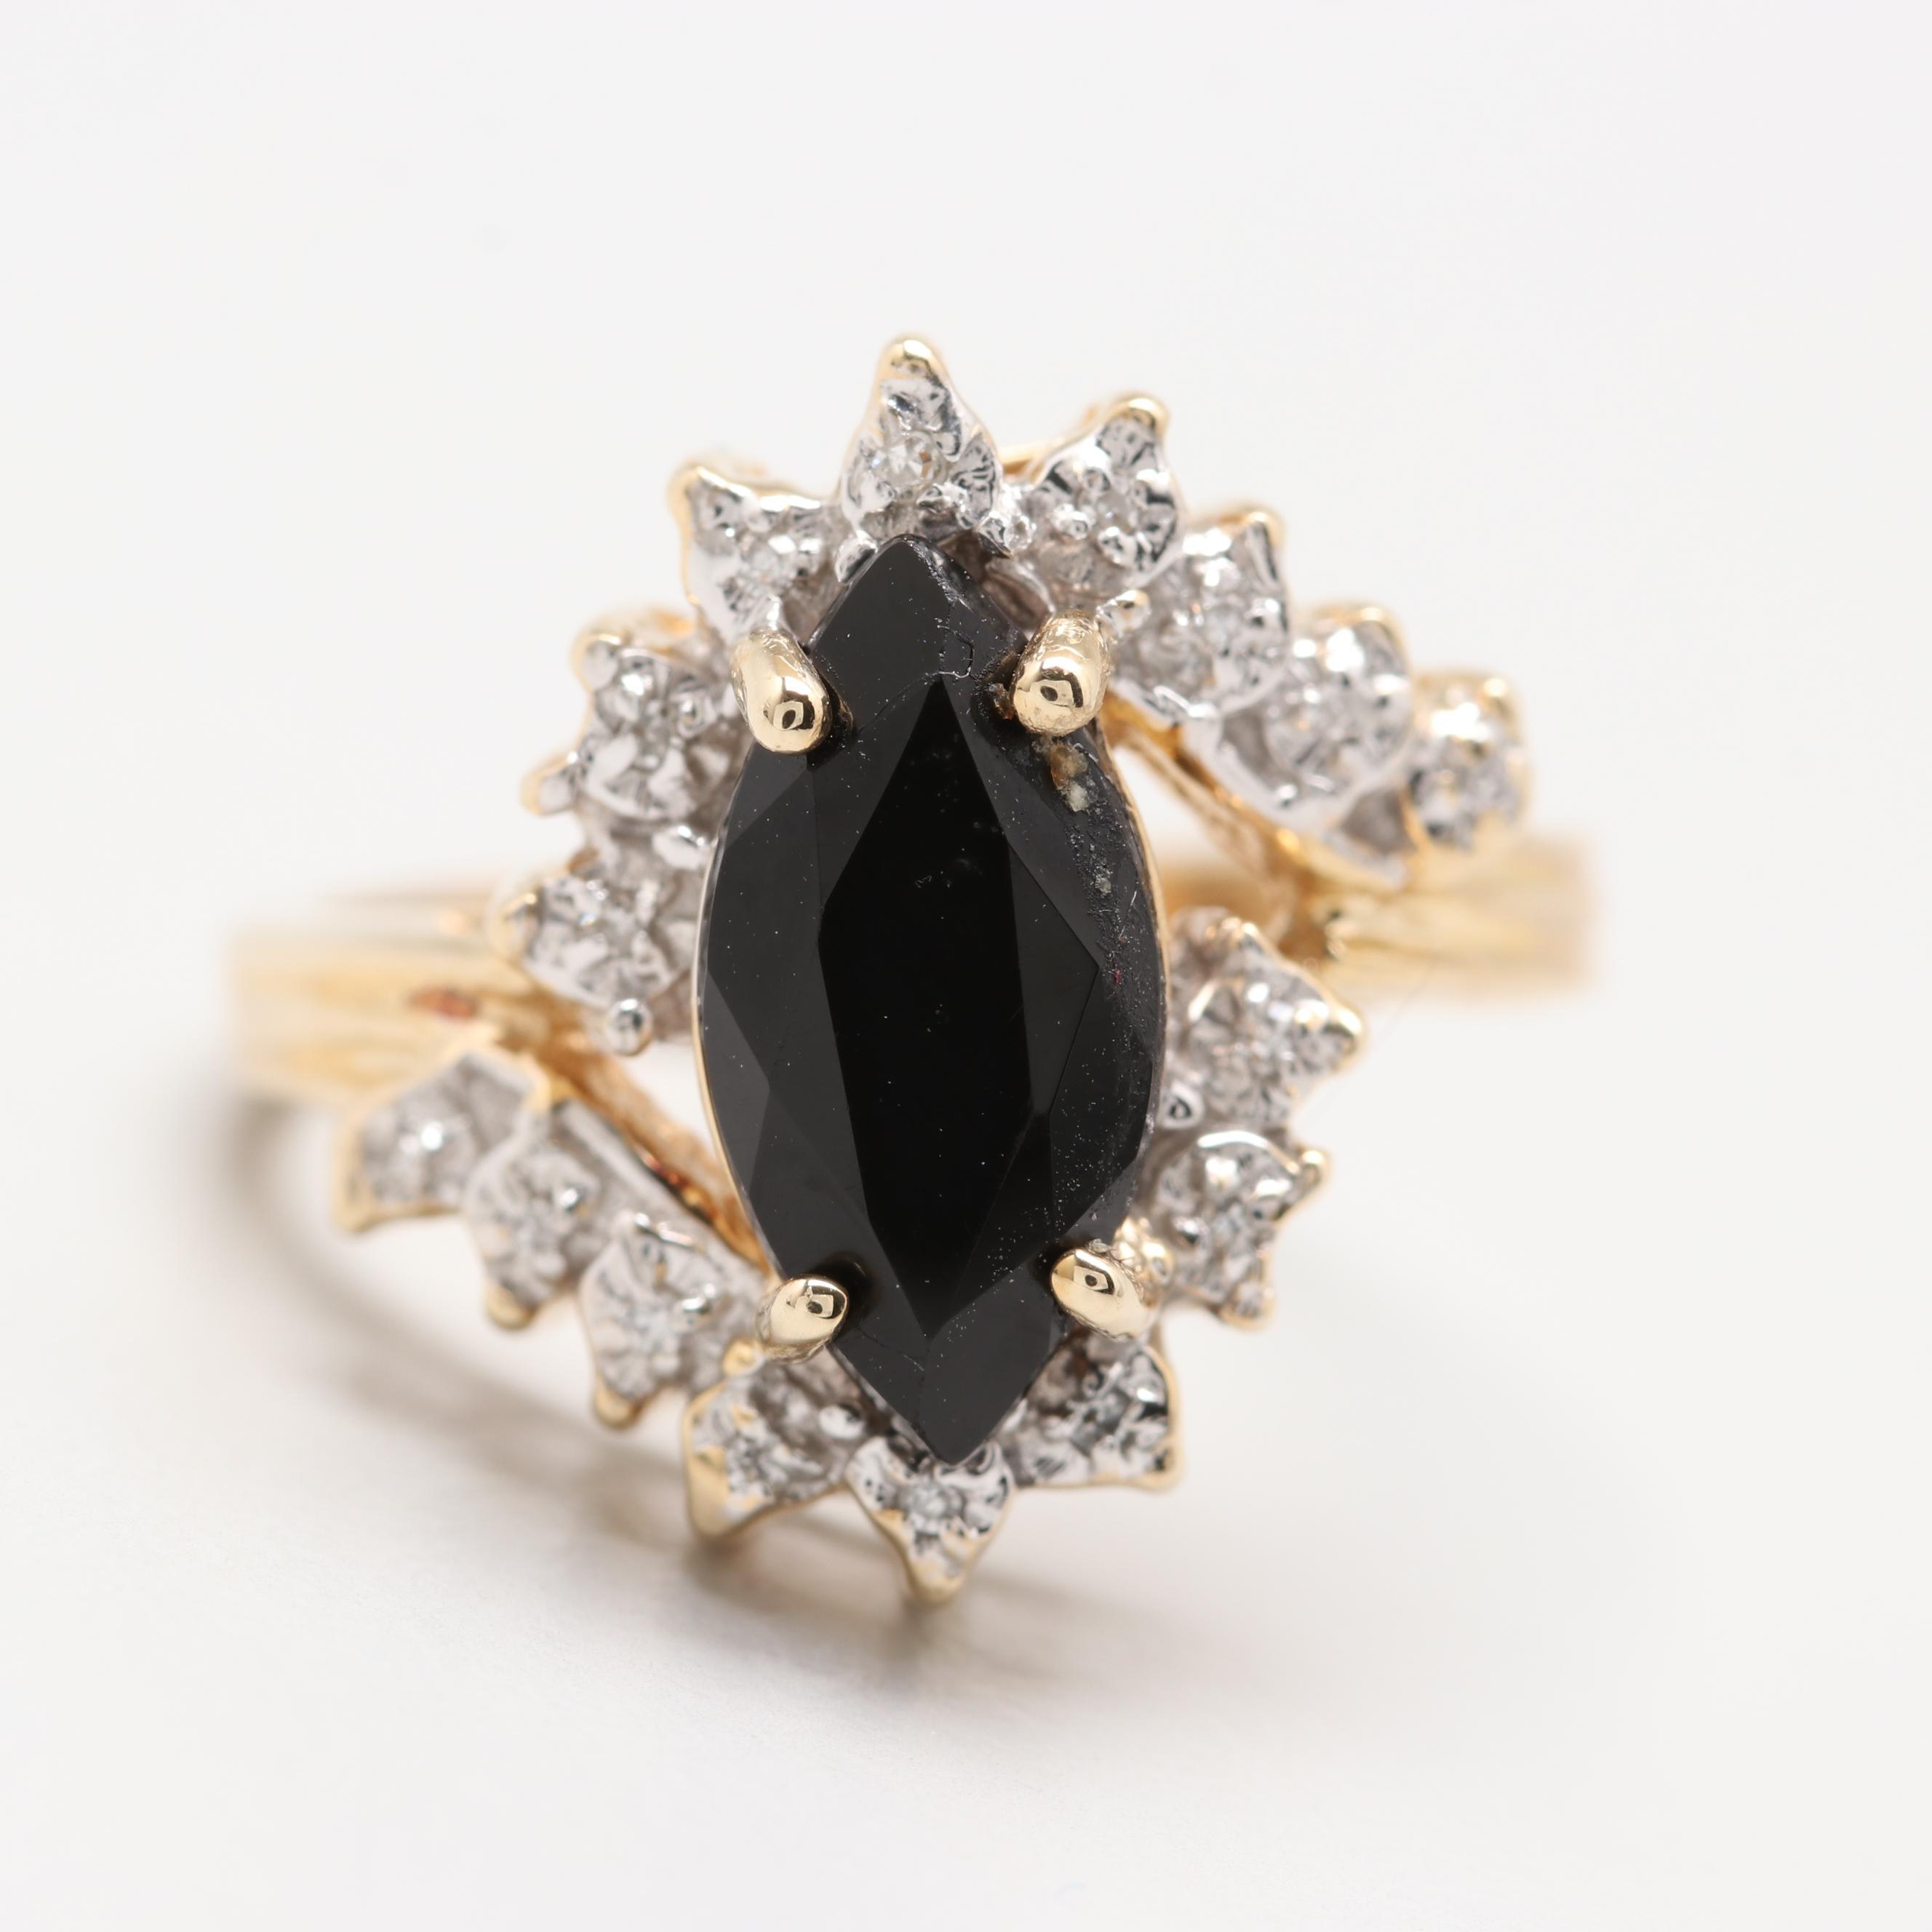 10K Yellow Gold Black Onyx and Diamond Ring